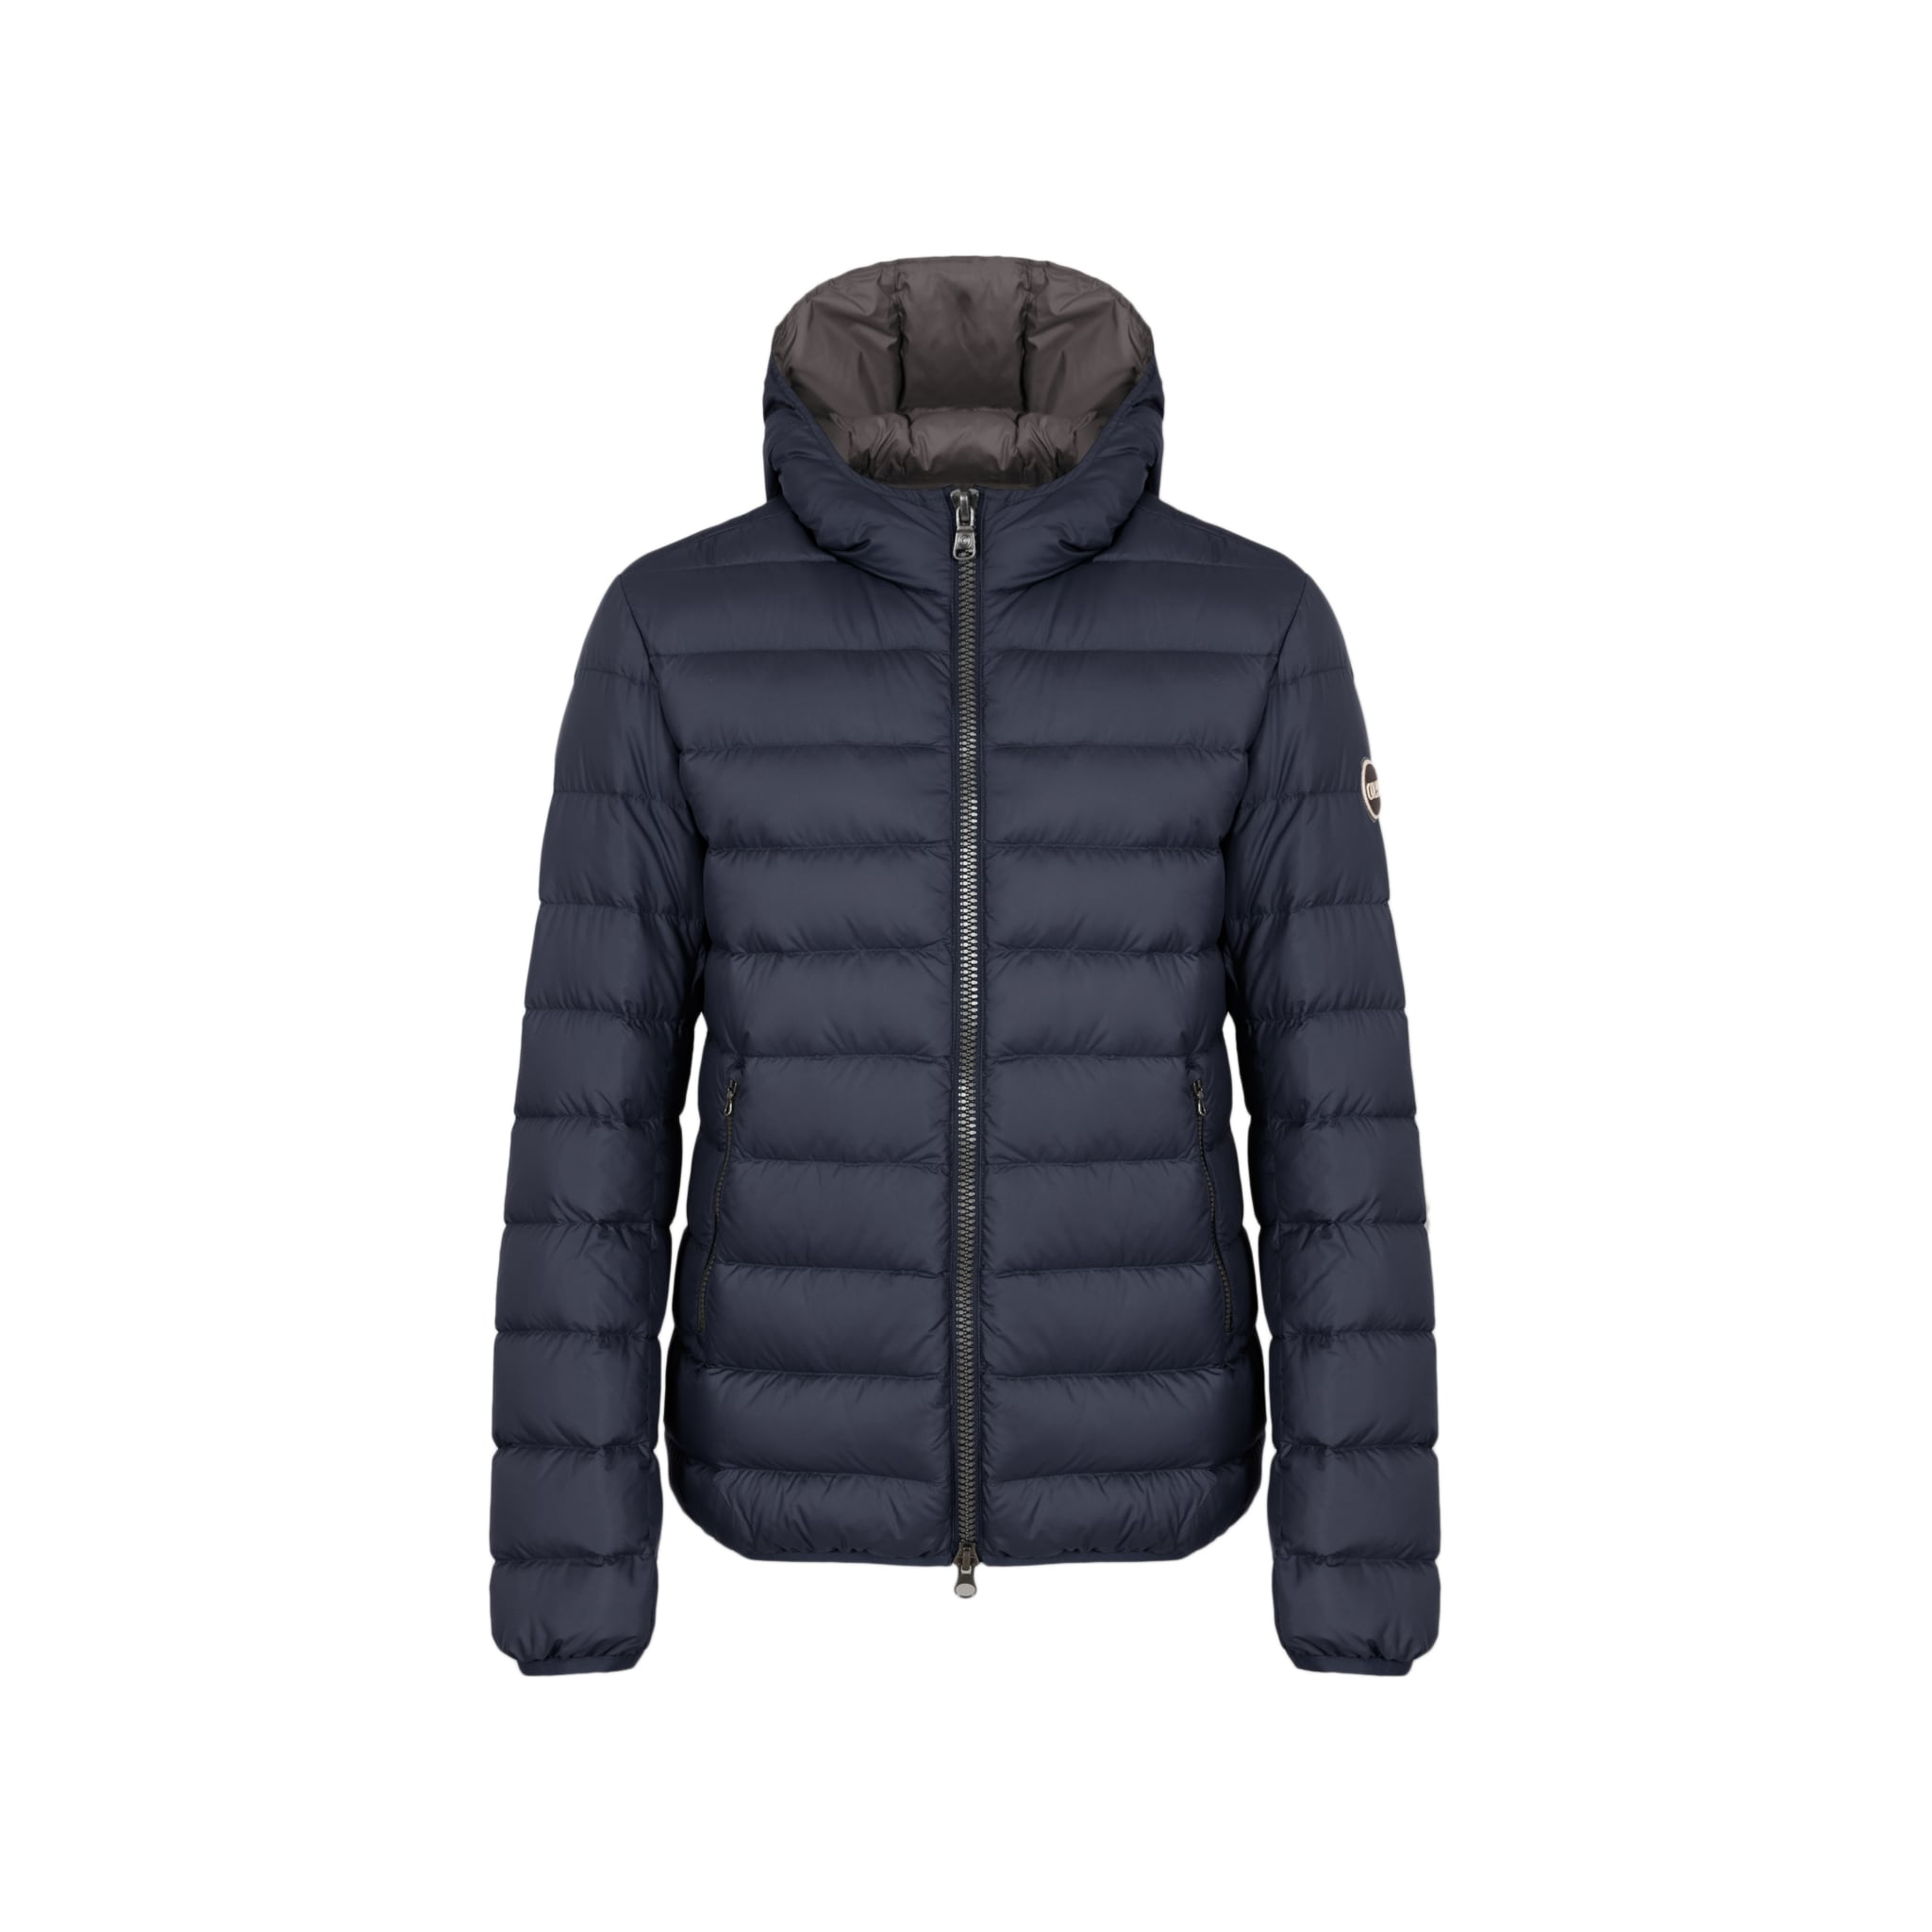 Originals Winter Down Jacket M